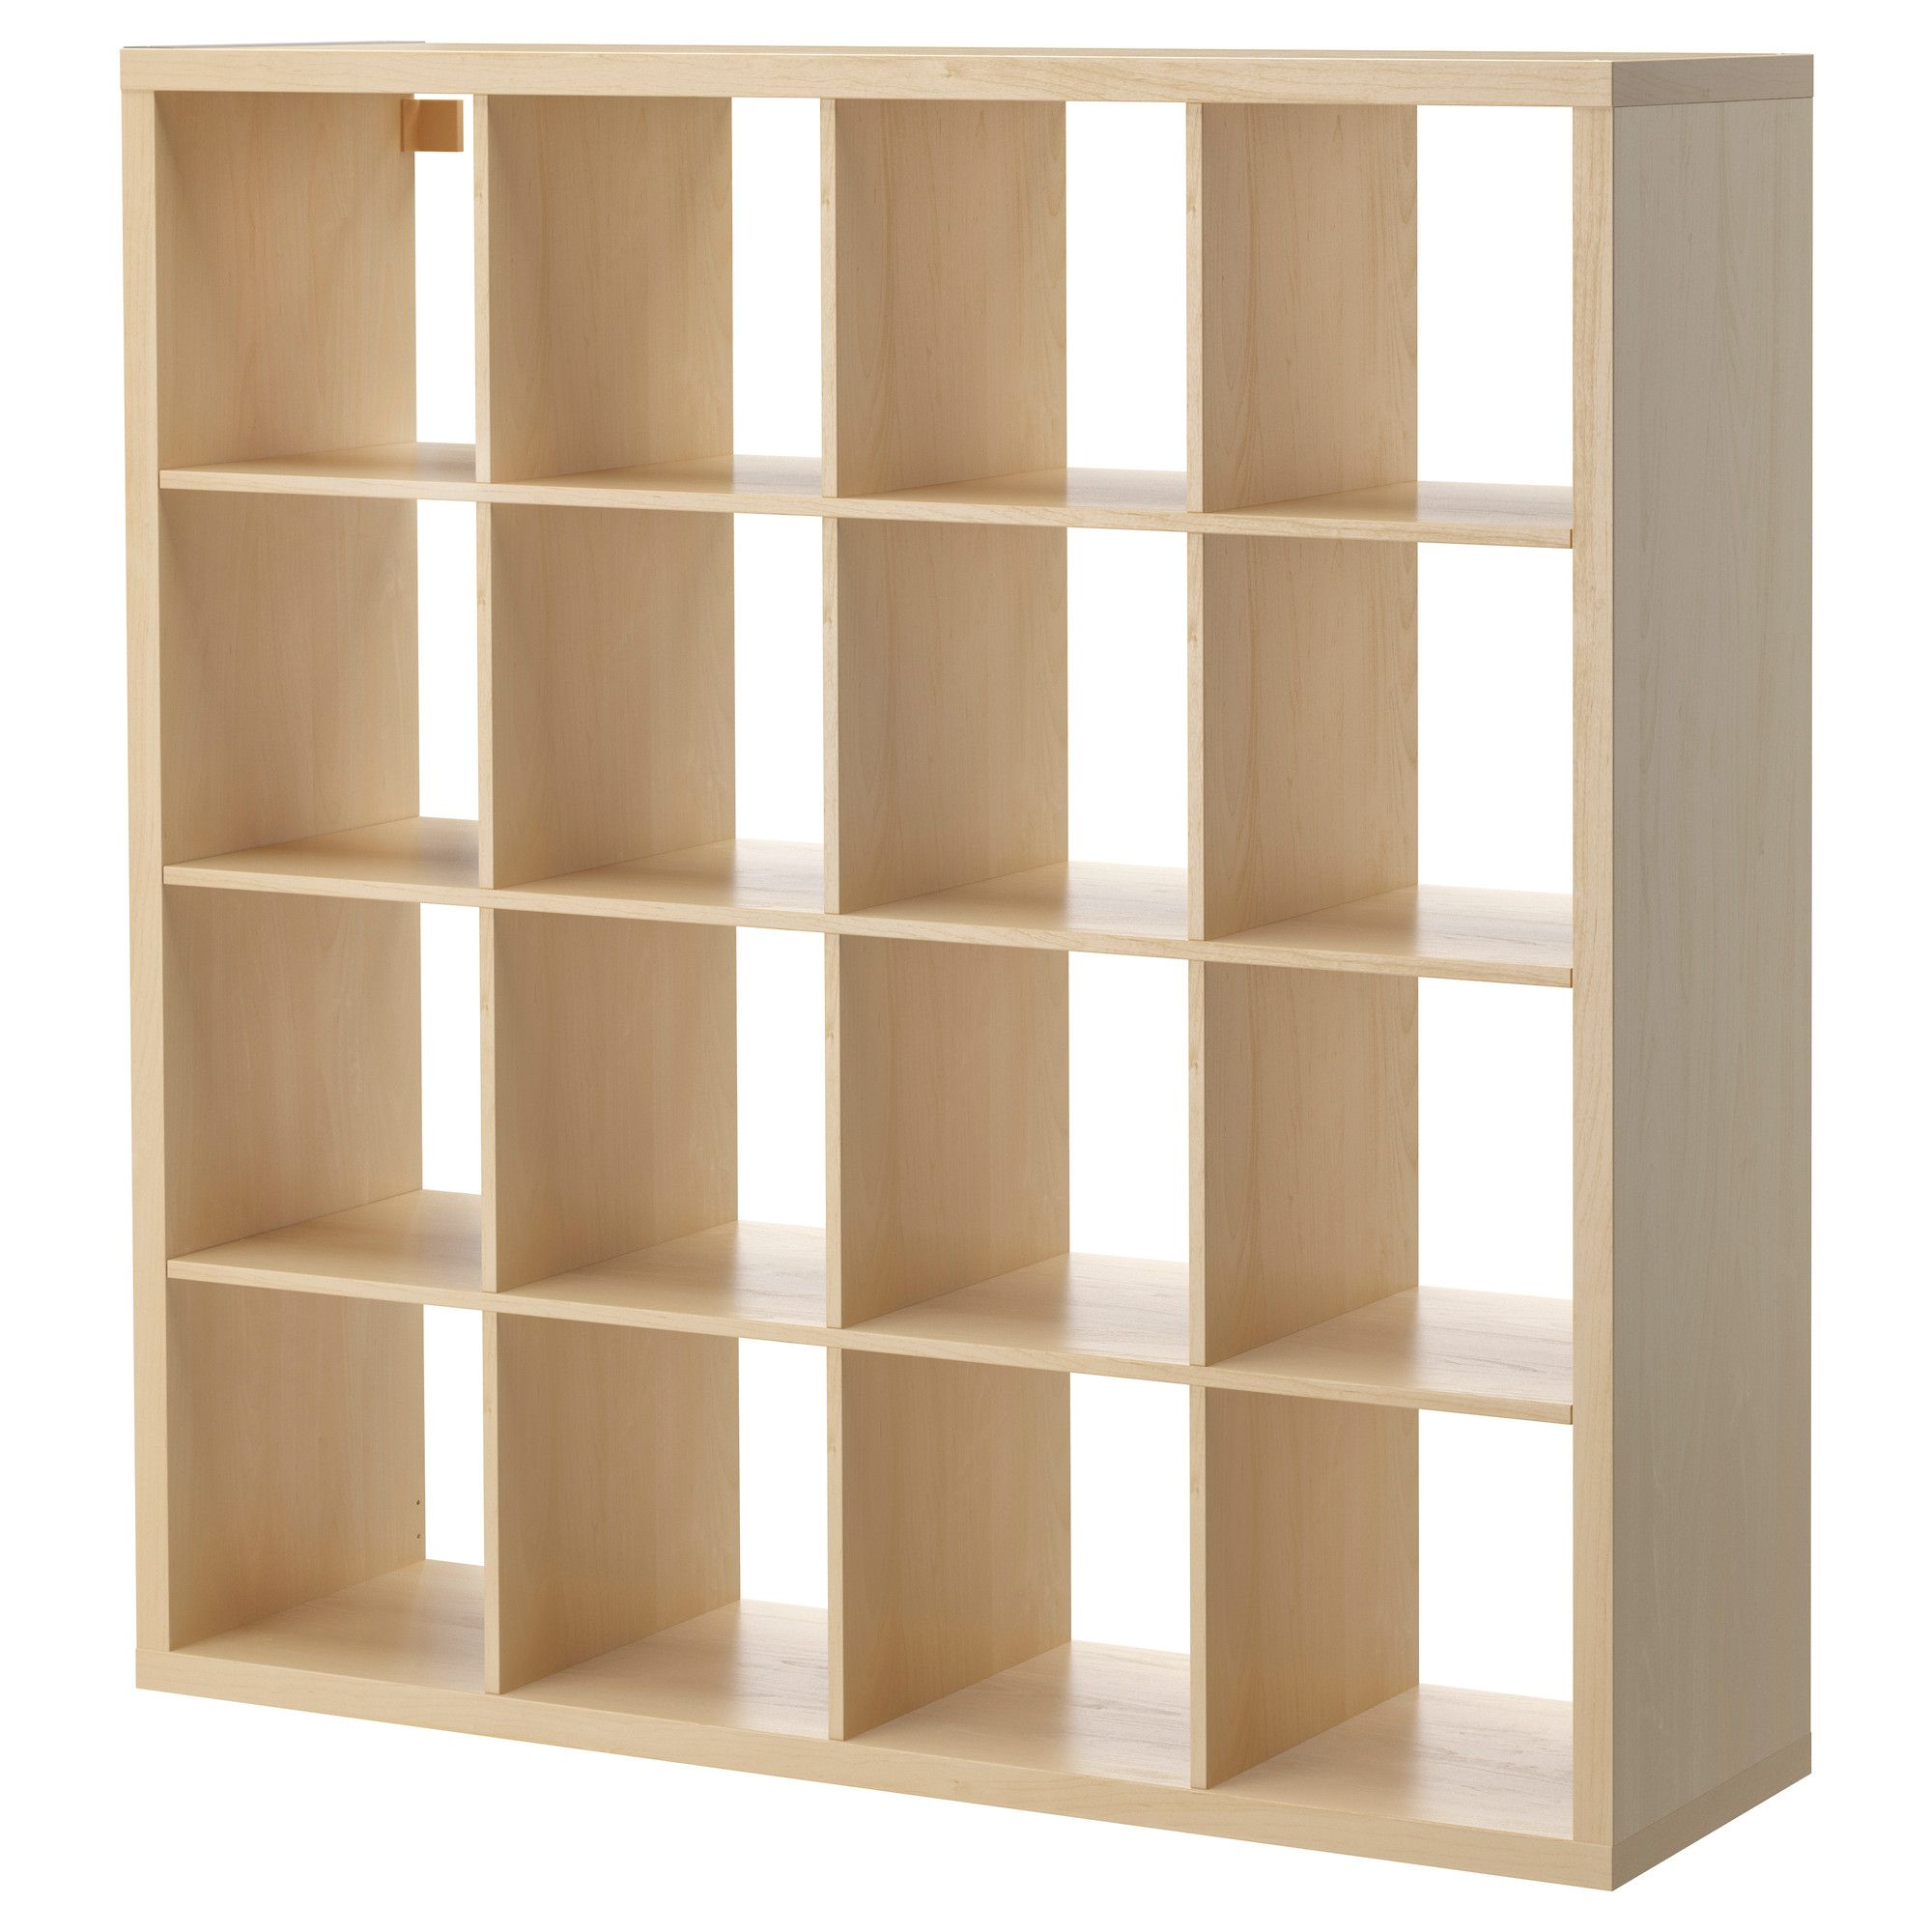 Ikea Regale Expedit kallax shelf unit birch effect kallax shelving unit kallax